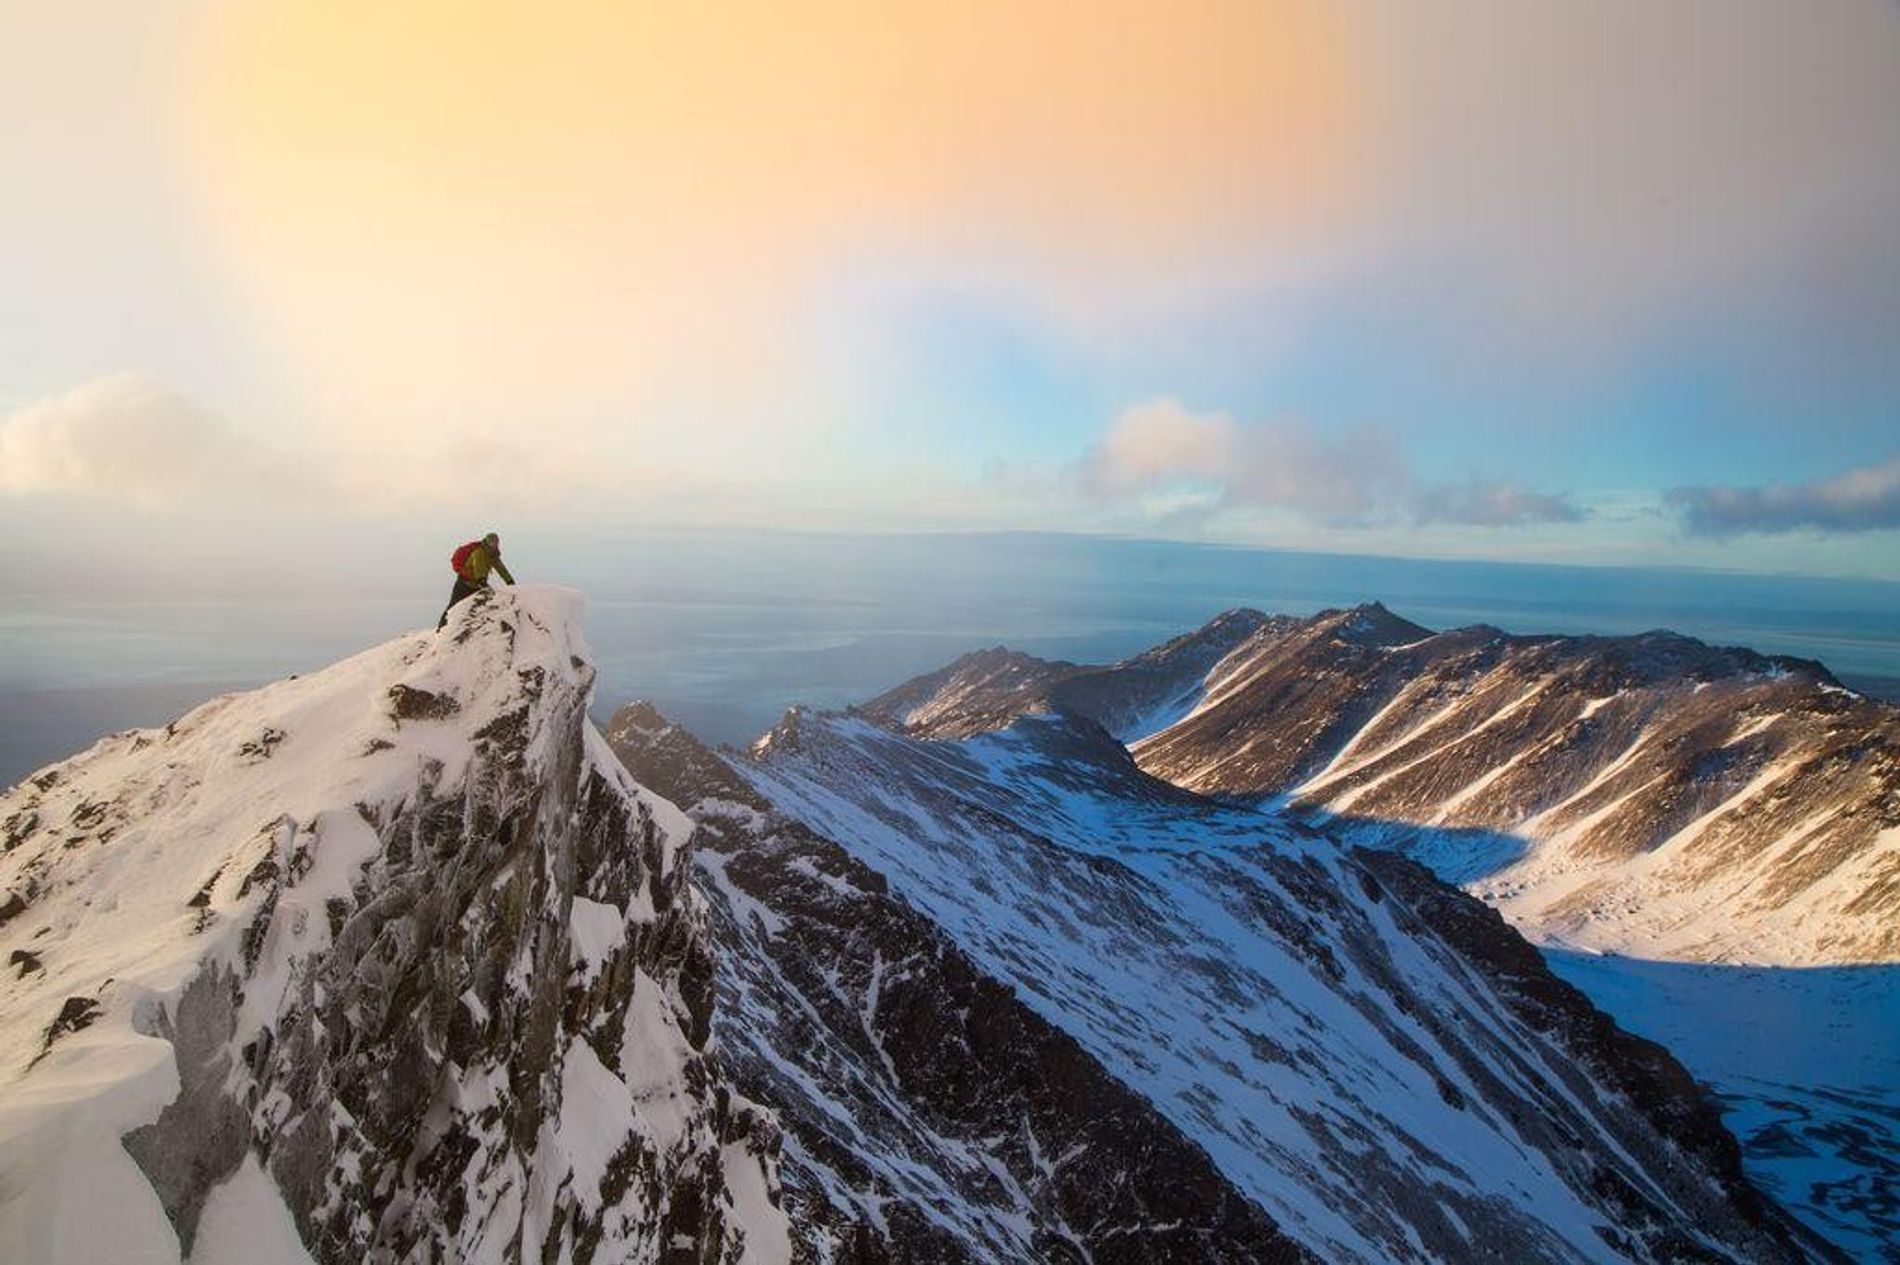 This photo was taken while coming down off of South Suicide Peak, Chugach State Park, Alaska. The conditions were prime. Both avalanche conditions and weather opened up in a way that allowed a burly summit in the middle of an Alaskan winter.